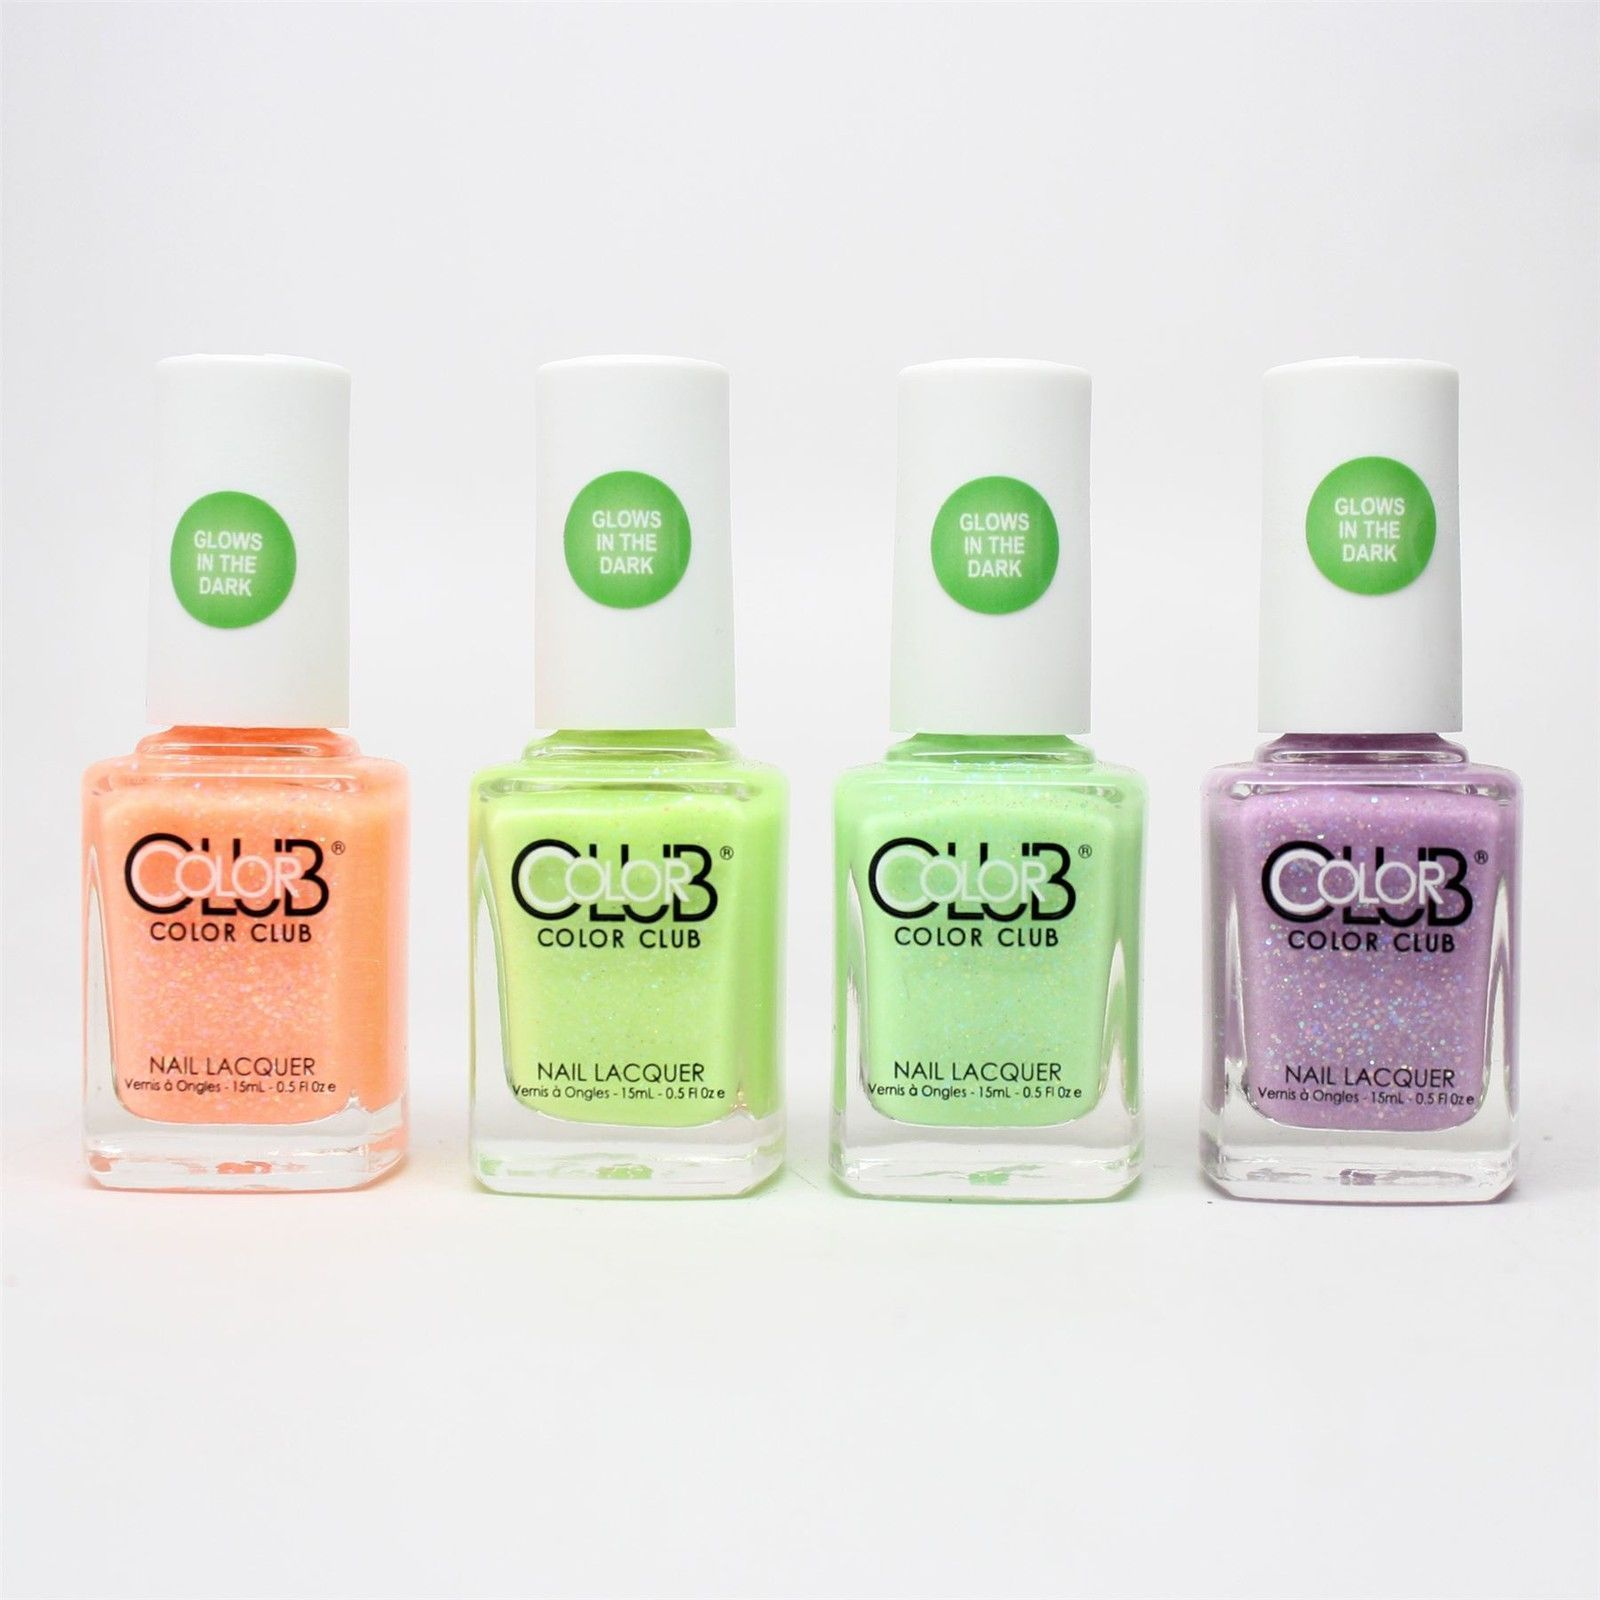 Color Club glow in the dark Nail Polish 2015 Neon Set of 4 colors | eBay